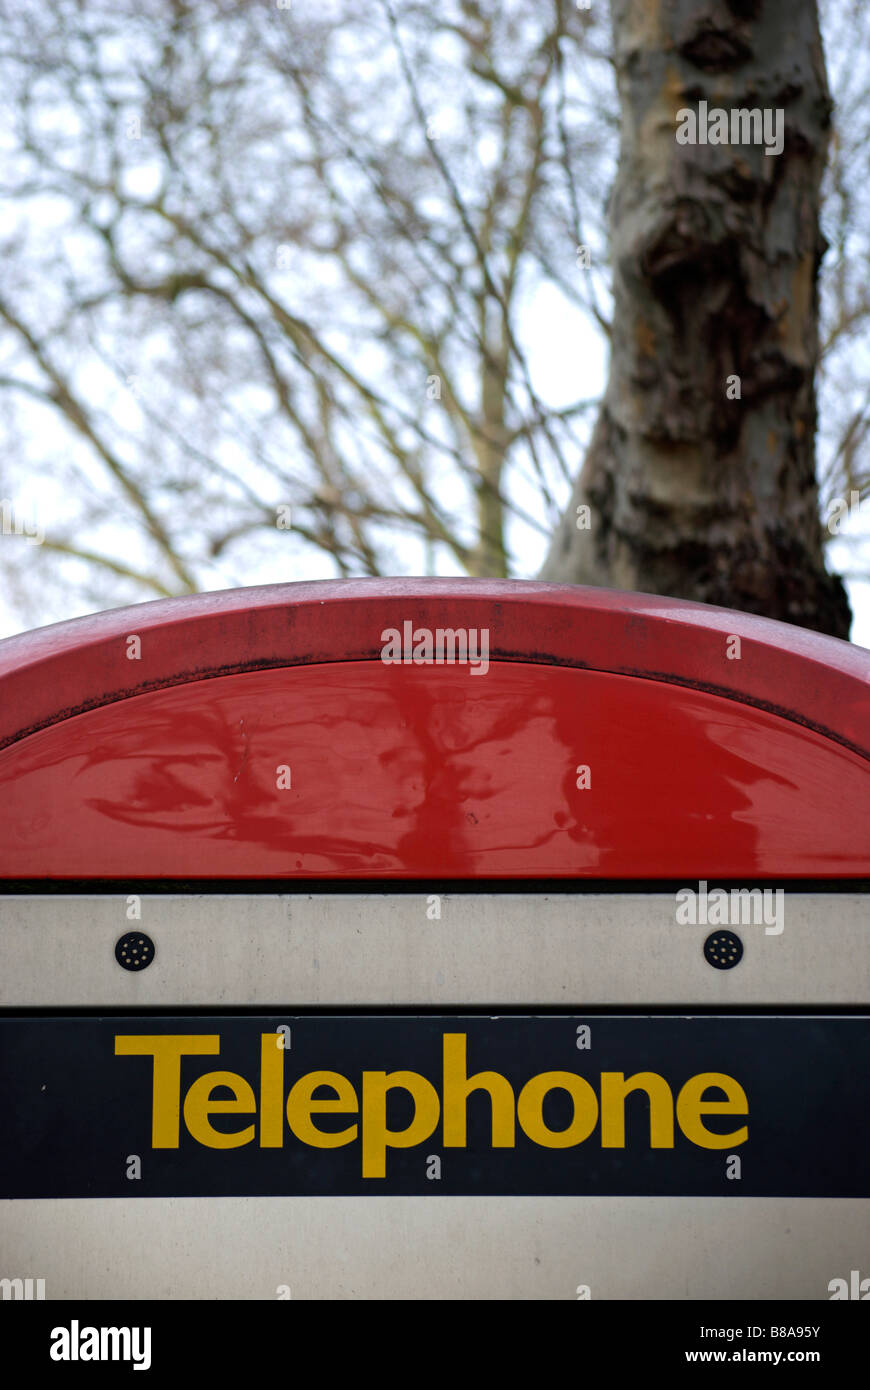 top section of a public telephone box in chiswick high road, west london, england - Stock Image